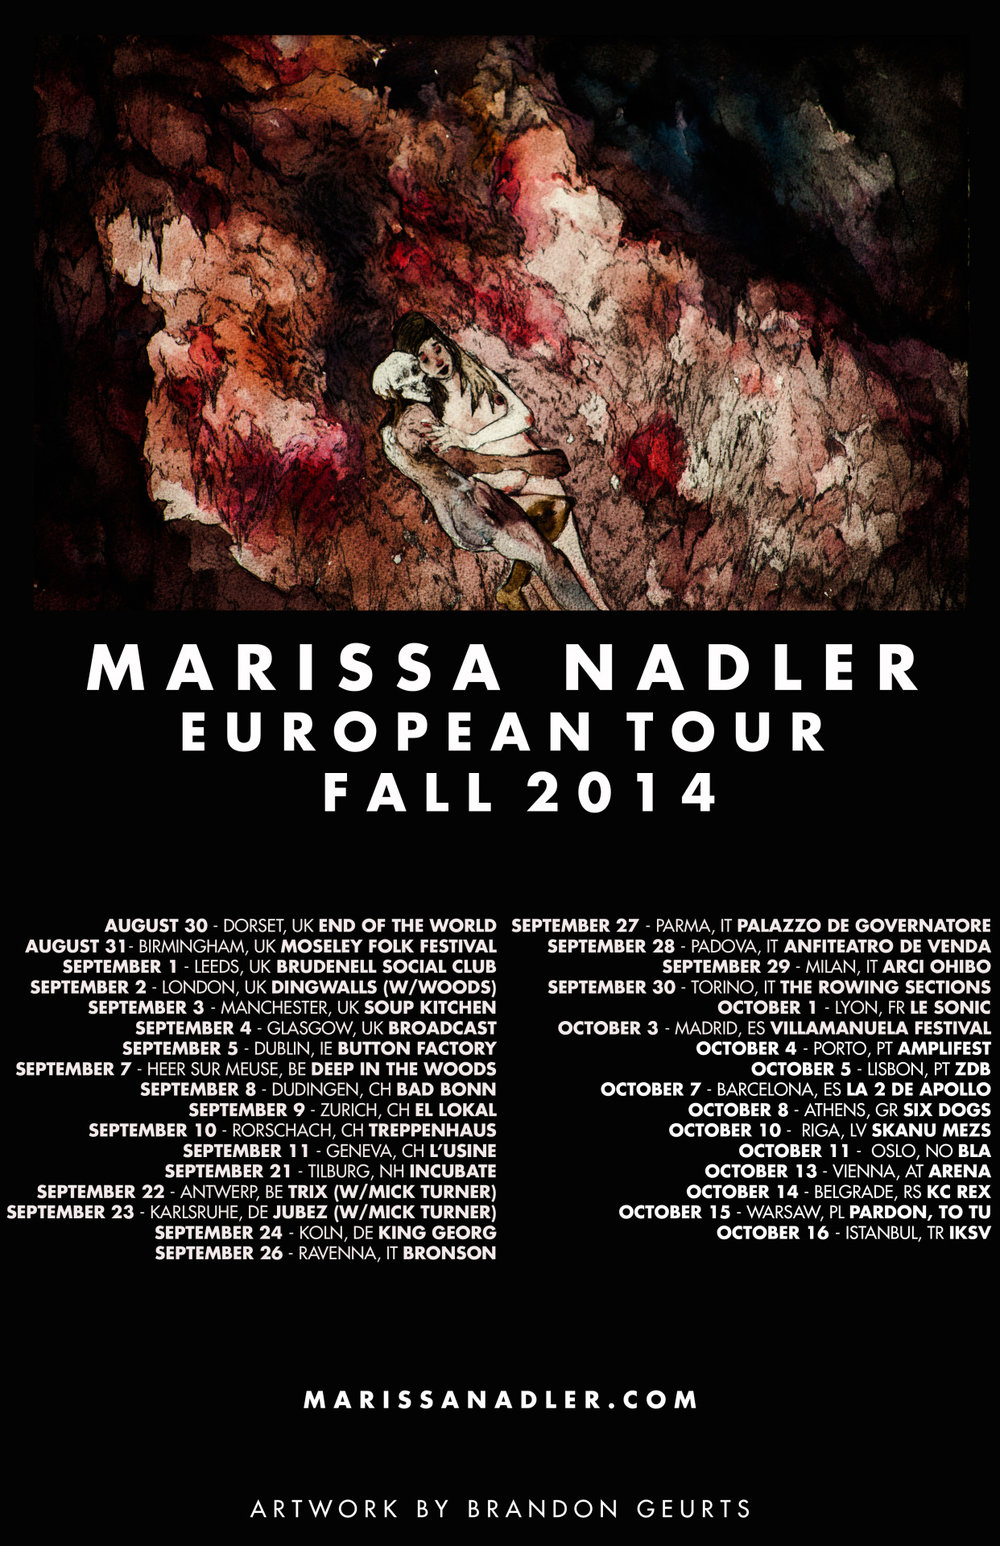 2014. Tour poster for Marissa Nadler.